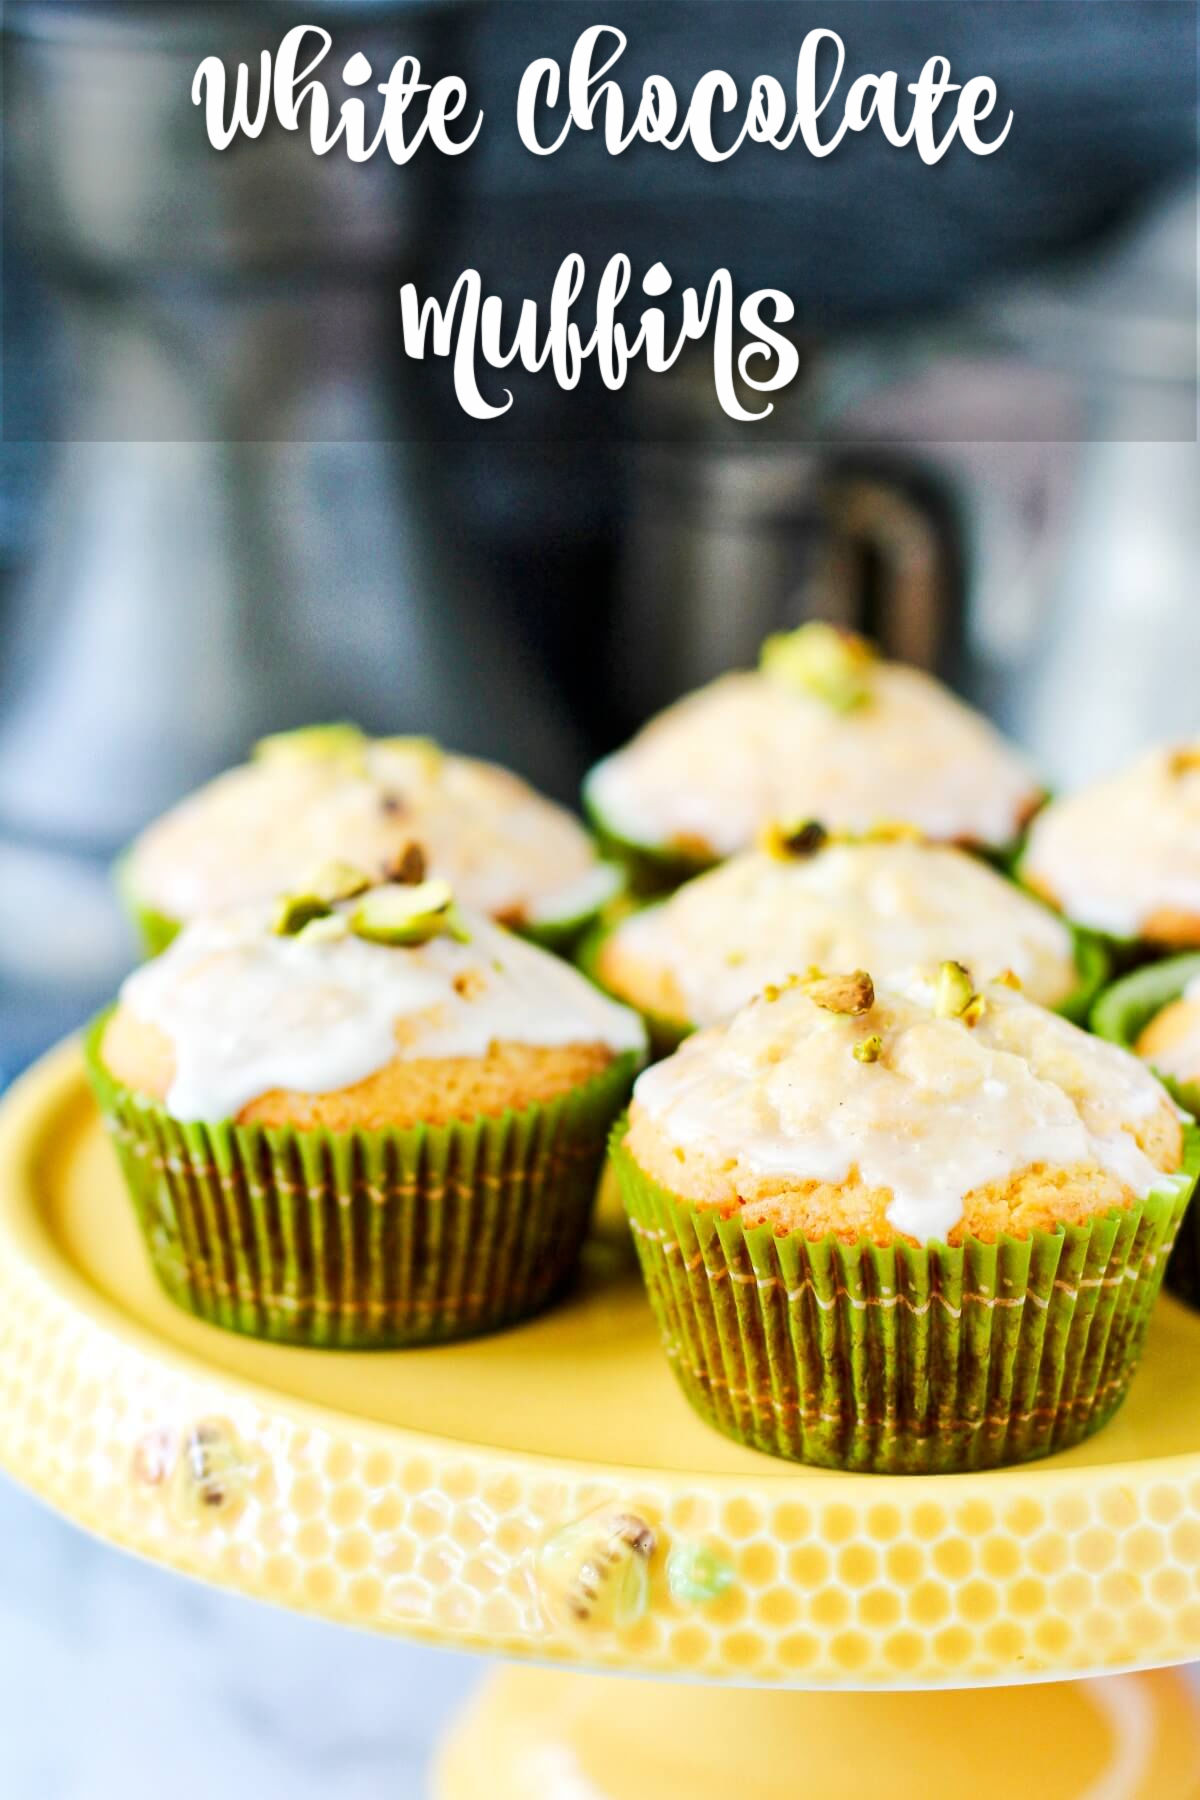 White Chocolate Muffins with a Pistachio Glaze and chopped pistacchios